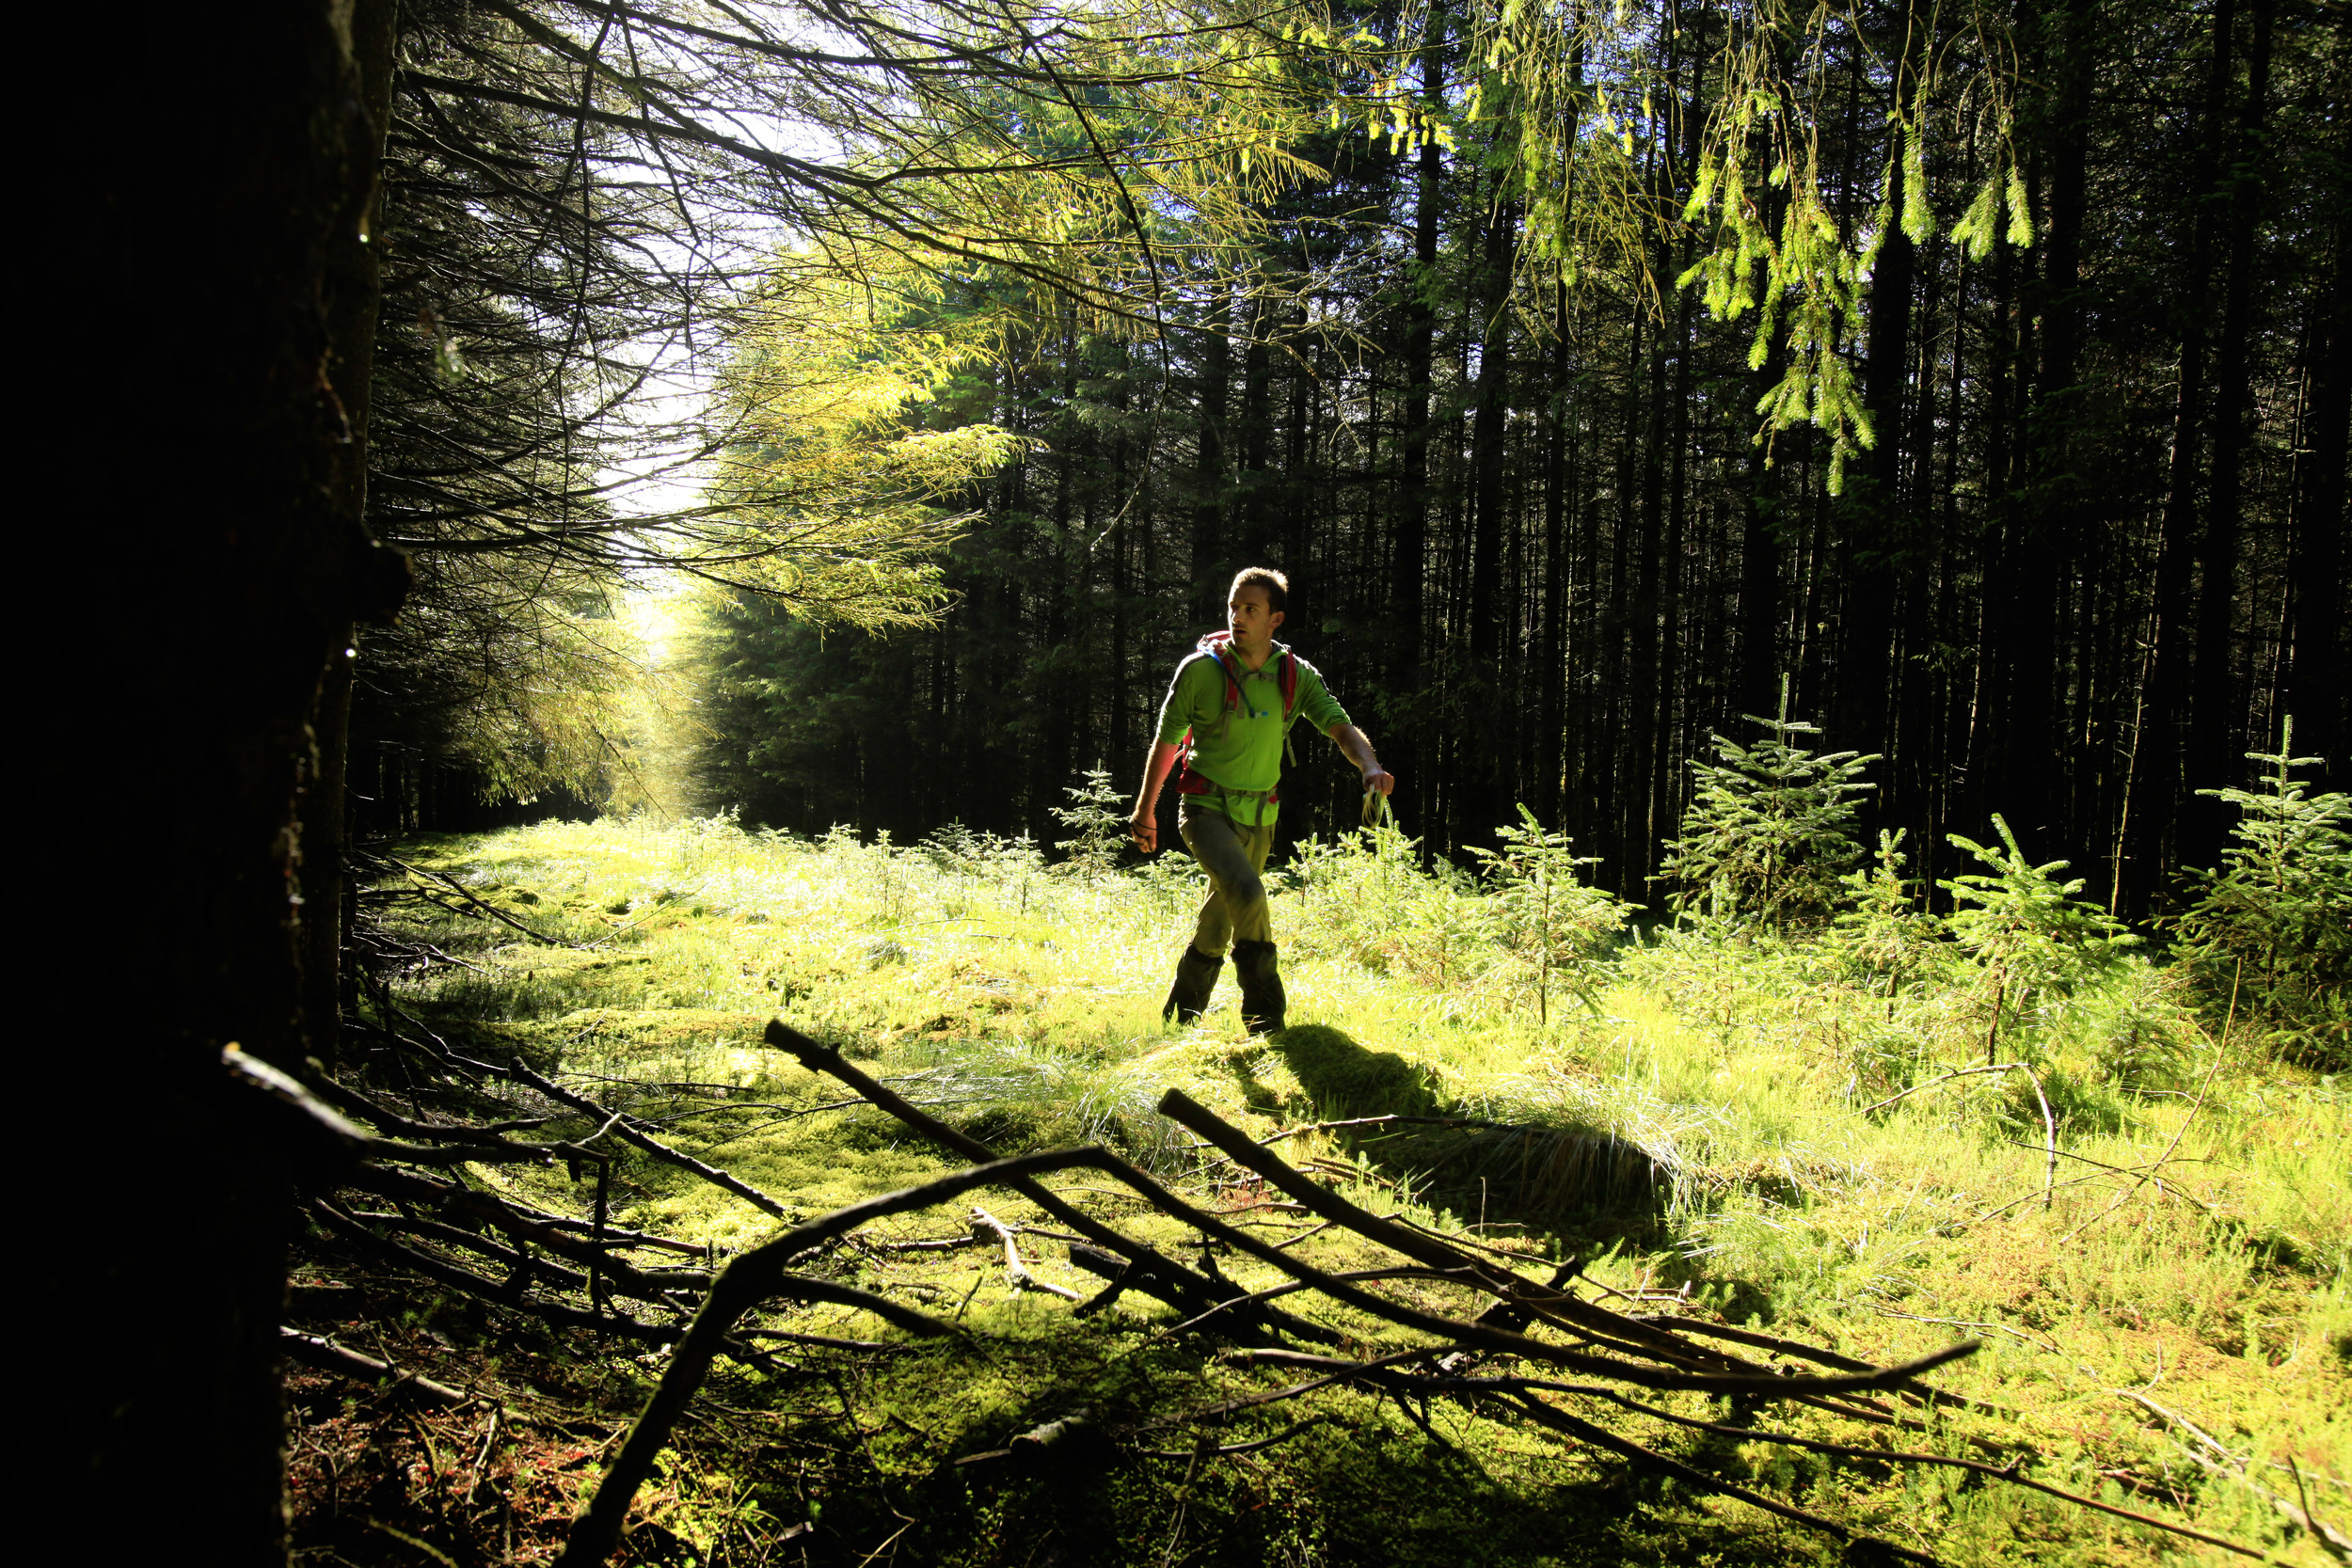 Entering the wild forests of the Northern Pennines in search of the wildest bit of all. Photo: Tom Bailey © Trail Magazine